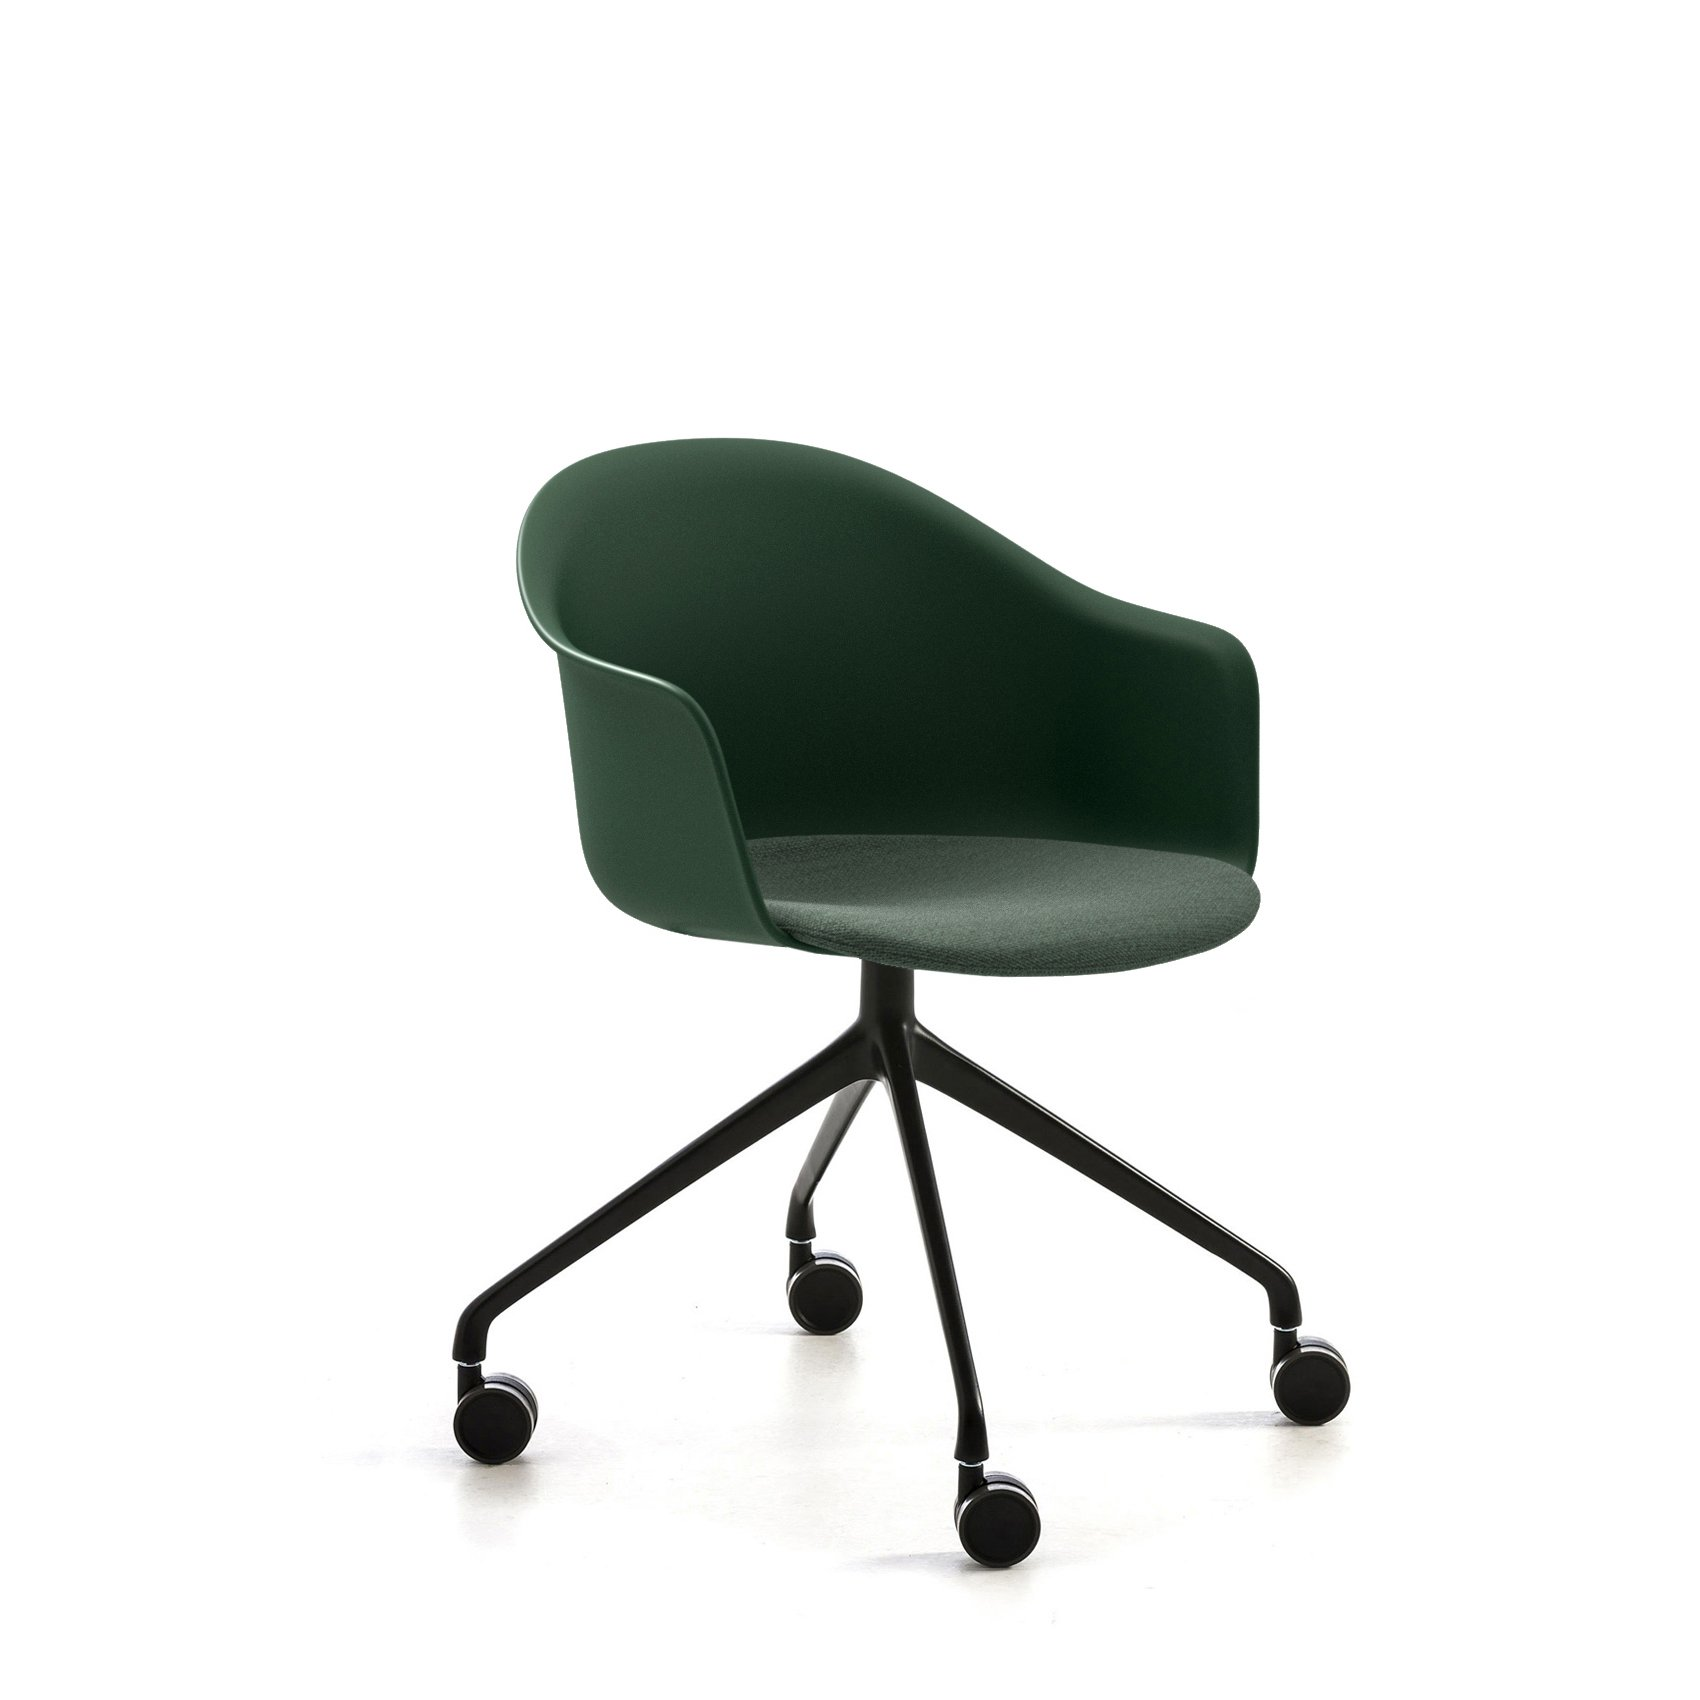 Mani Armshell HO/4 Swivel Armchair office from Arrmet, designed by Welling/Ludvik